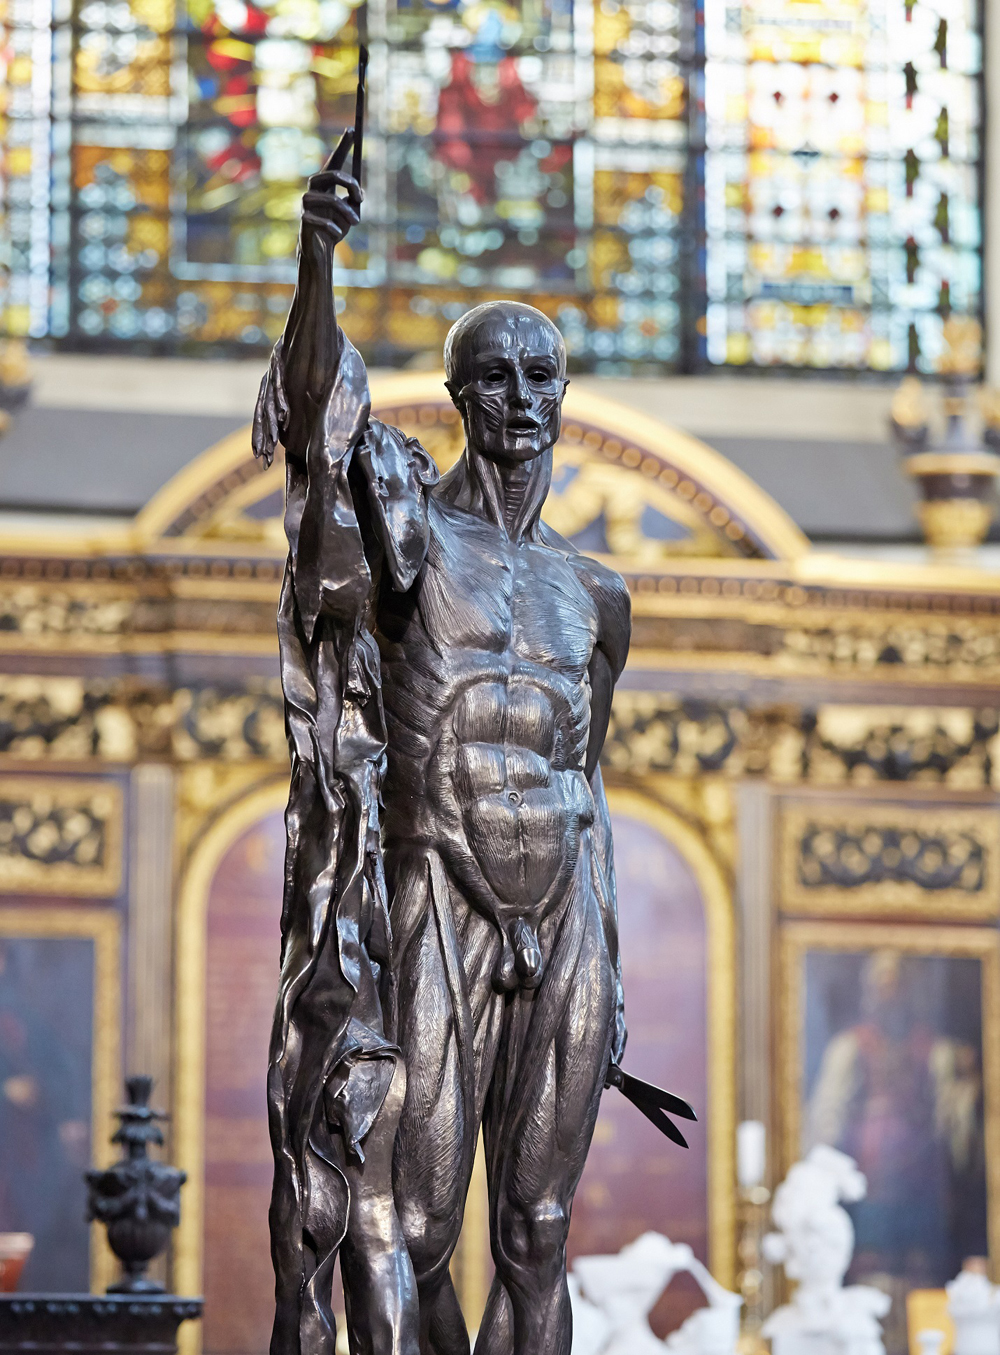 Saint Bartholomew, Exquisite Pain by Damien Hirst 2014